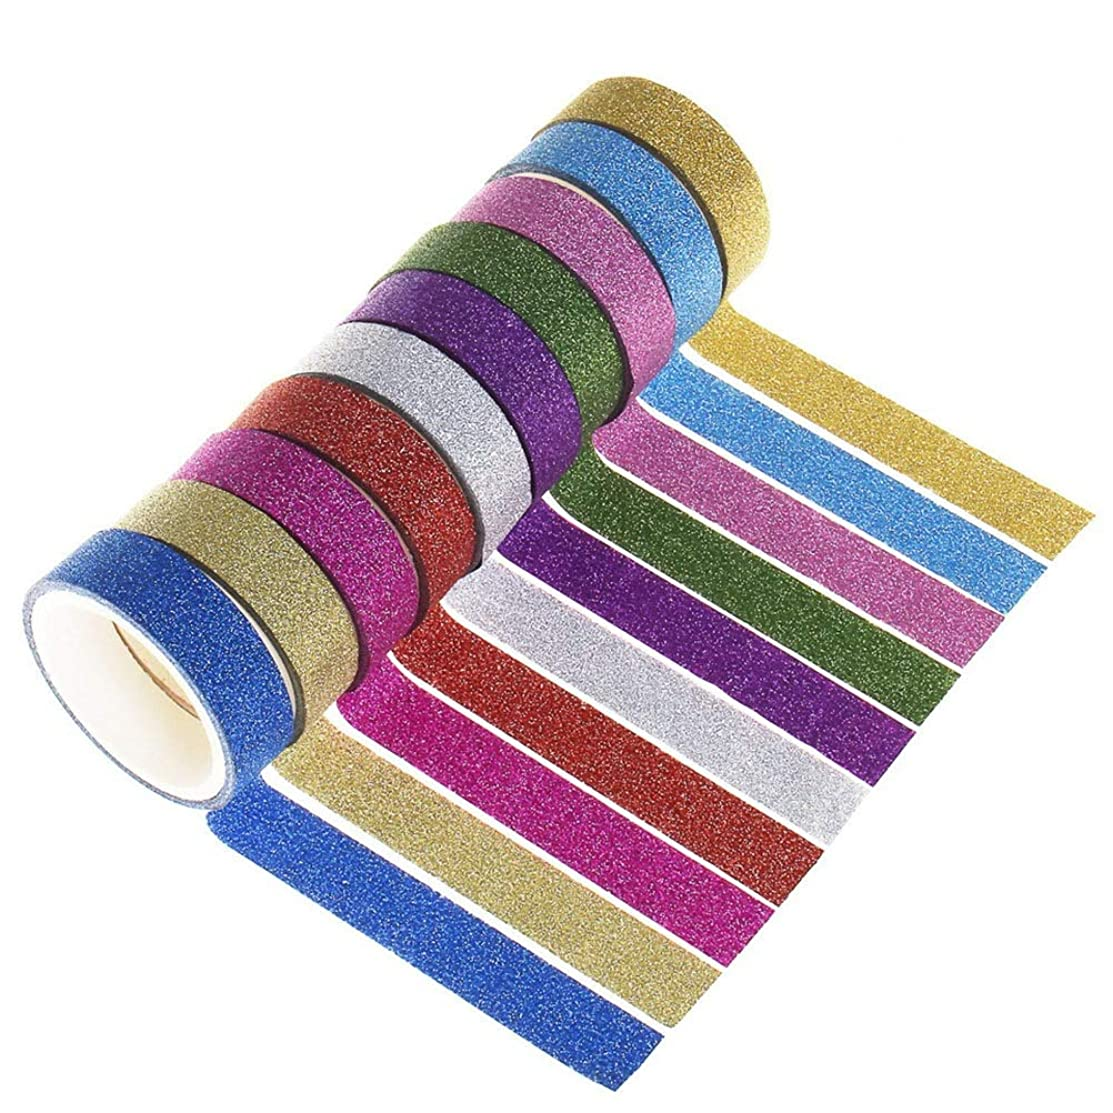 Wode Shop 10 Rolls Glitter Washi Paper Tape, Crafting Sticky Tapes Decorative Masking Adhesive Tape Label for DIY Crafts and Gift, 3 M